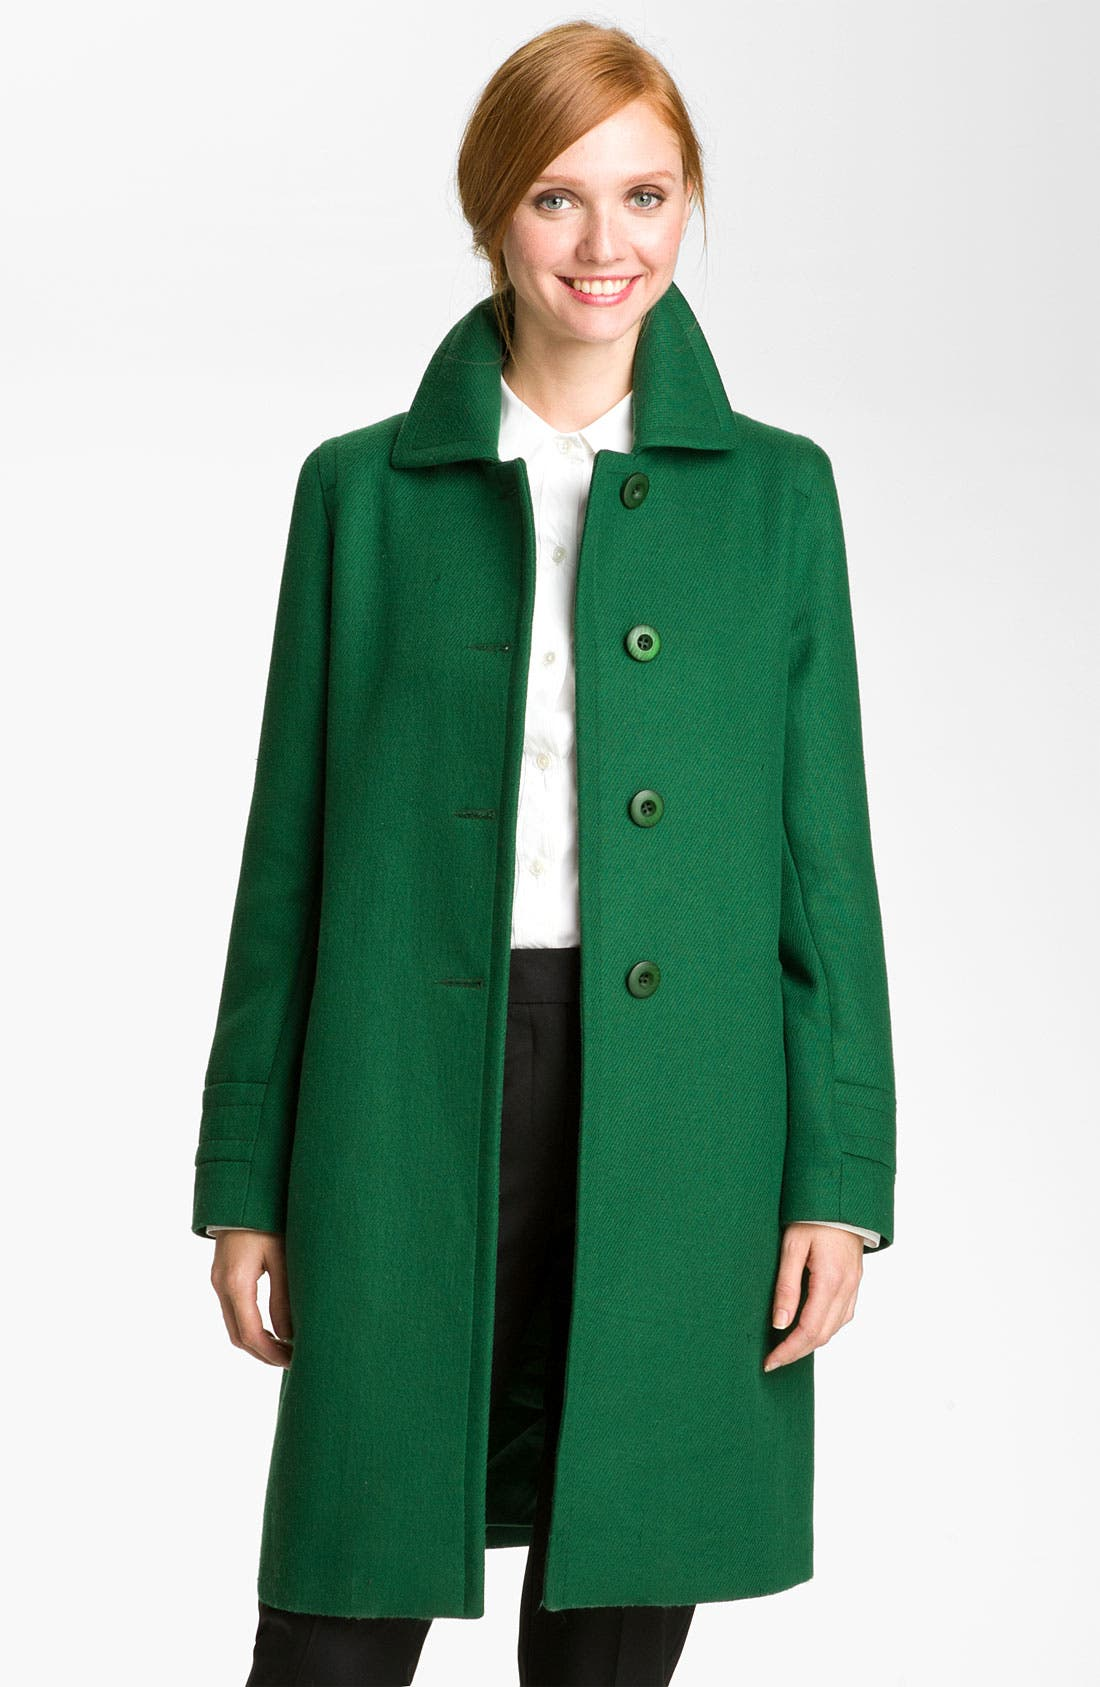 Main Image - Kristen Blake Single Breasted Walking Coat